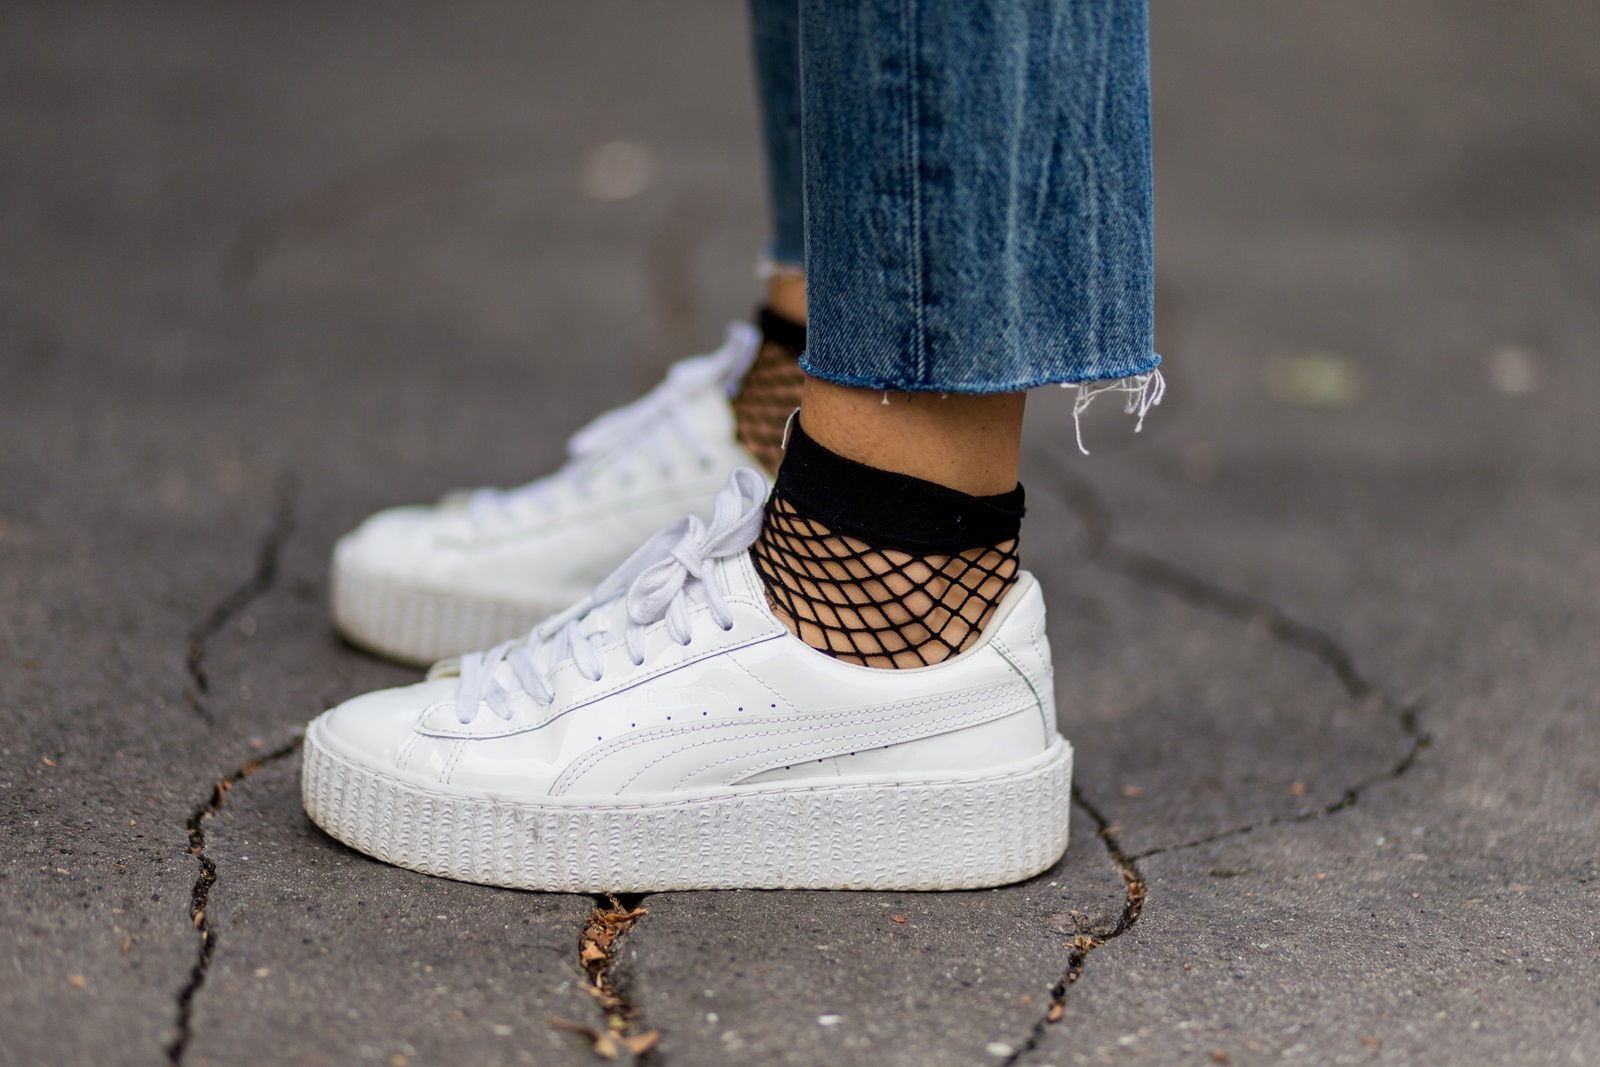 MILAN, ITALY - SEPTEMBER 22: Lisa Hahnbeuck (@lisarvd) wearing Puma Fenty Creeper Sneaker, Fishnet Socks Asos, outside Fendi during Milan Fashion Week Spring/Summer 2017 on September 22, 2016 in Milan, Italy. (Photo by Christian Vierig/Getty Images) *** Local Caption *** Lisa Hahnbeuck